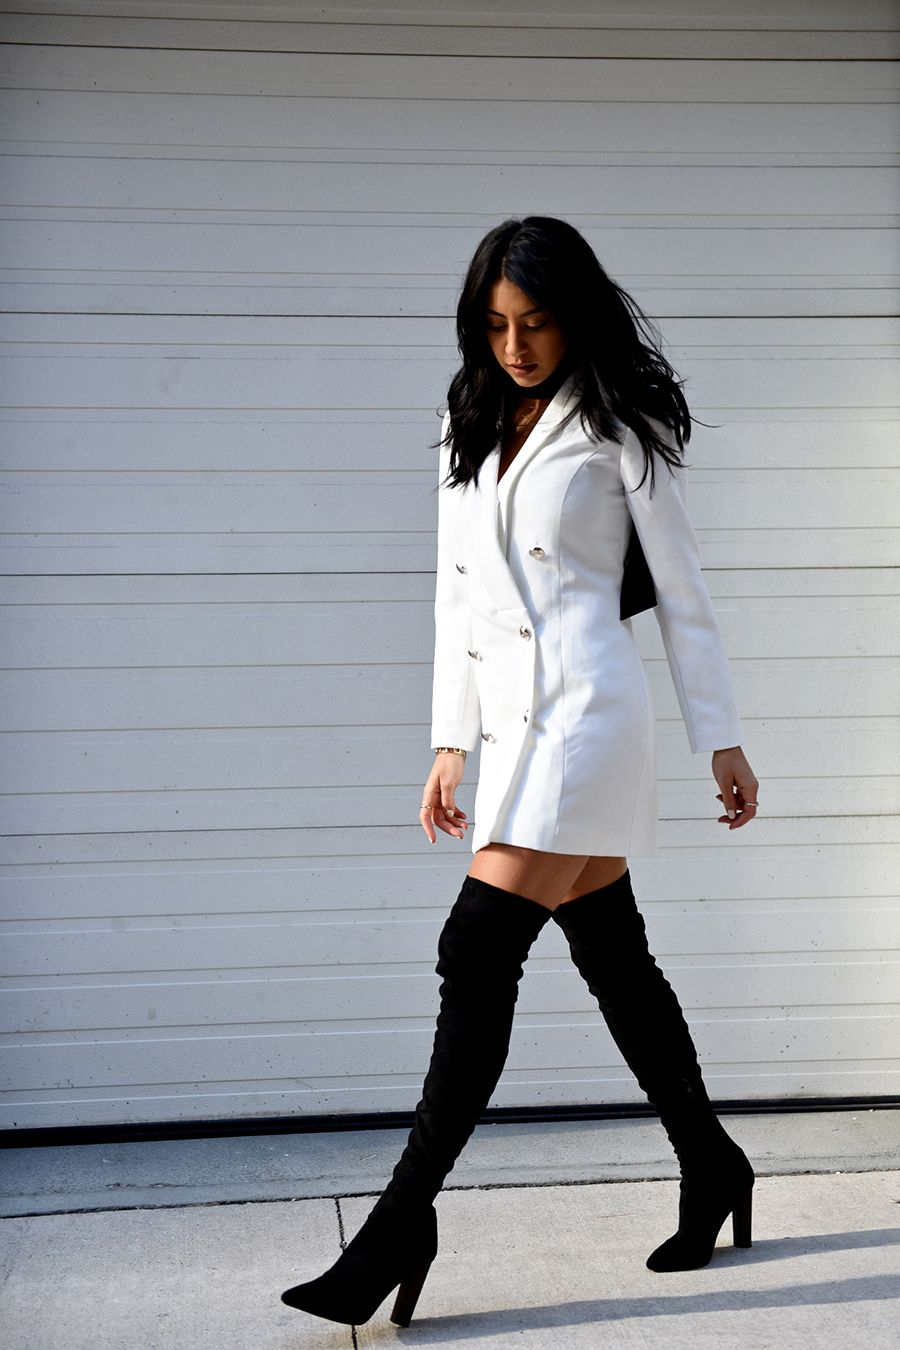 The Thigh High Boots Outfit 35 Ways To Wear Thigh High Boots Just The Design Thigh High Boots Outfit Fashion High Boots Outfit [ 1350 x 900 Pixel ]